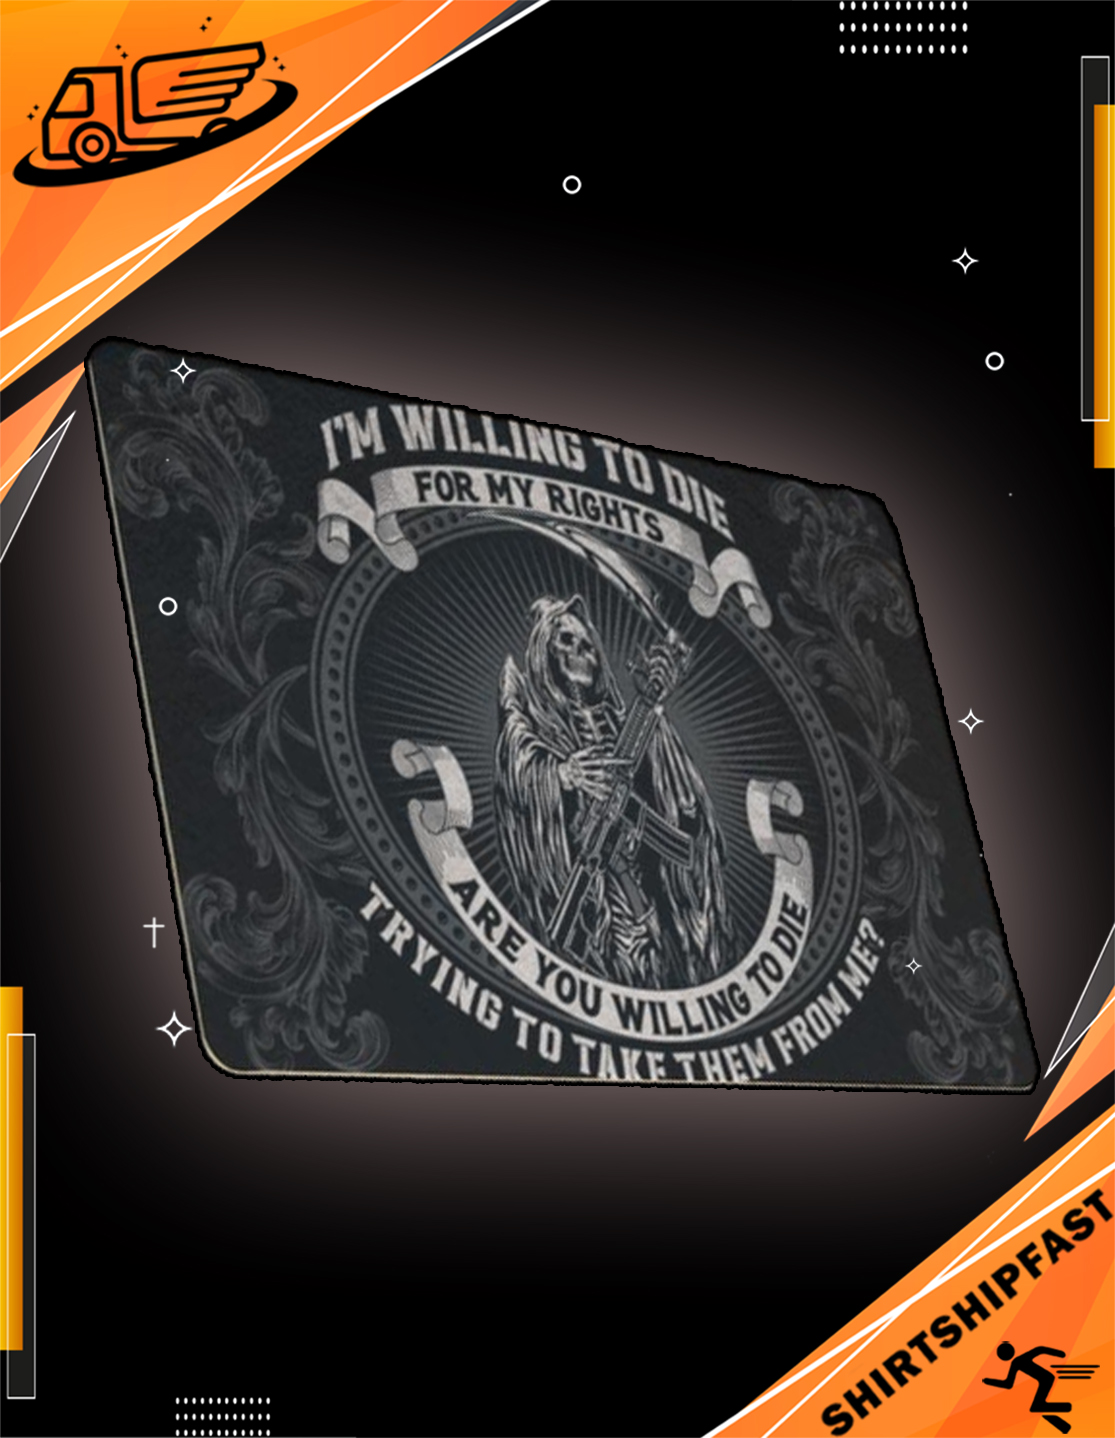 Grim Reaper Death I'm willing to die for my rights doormat - Picture 3